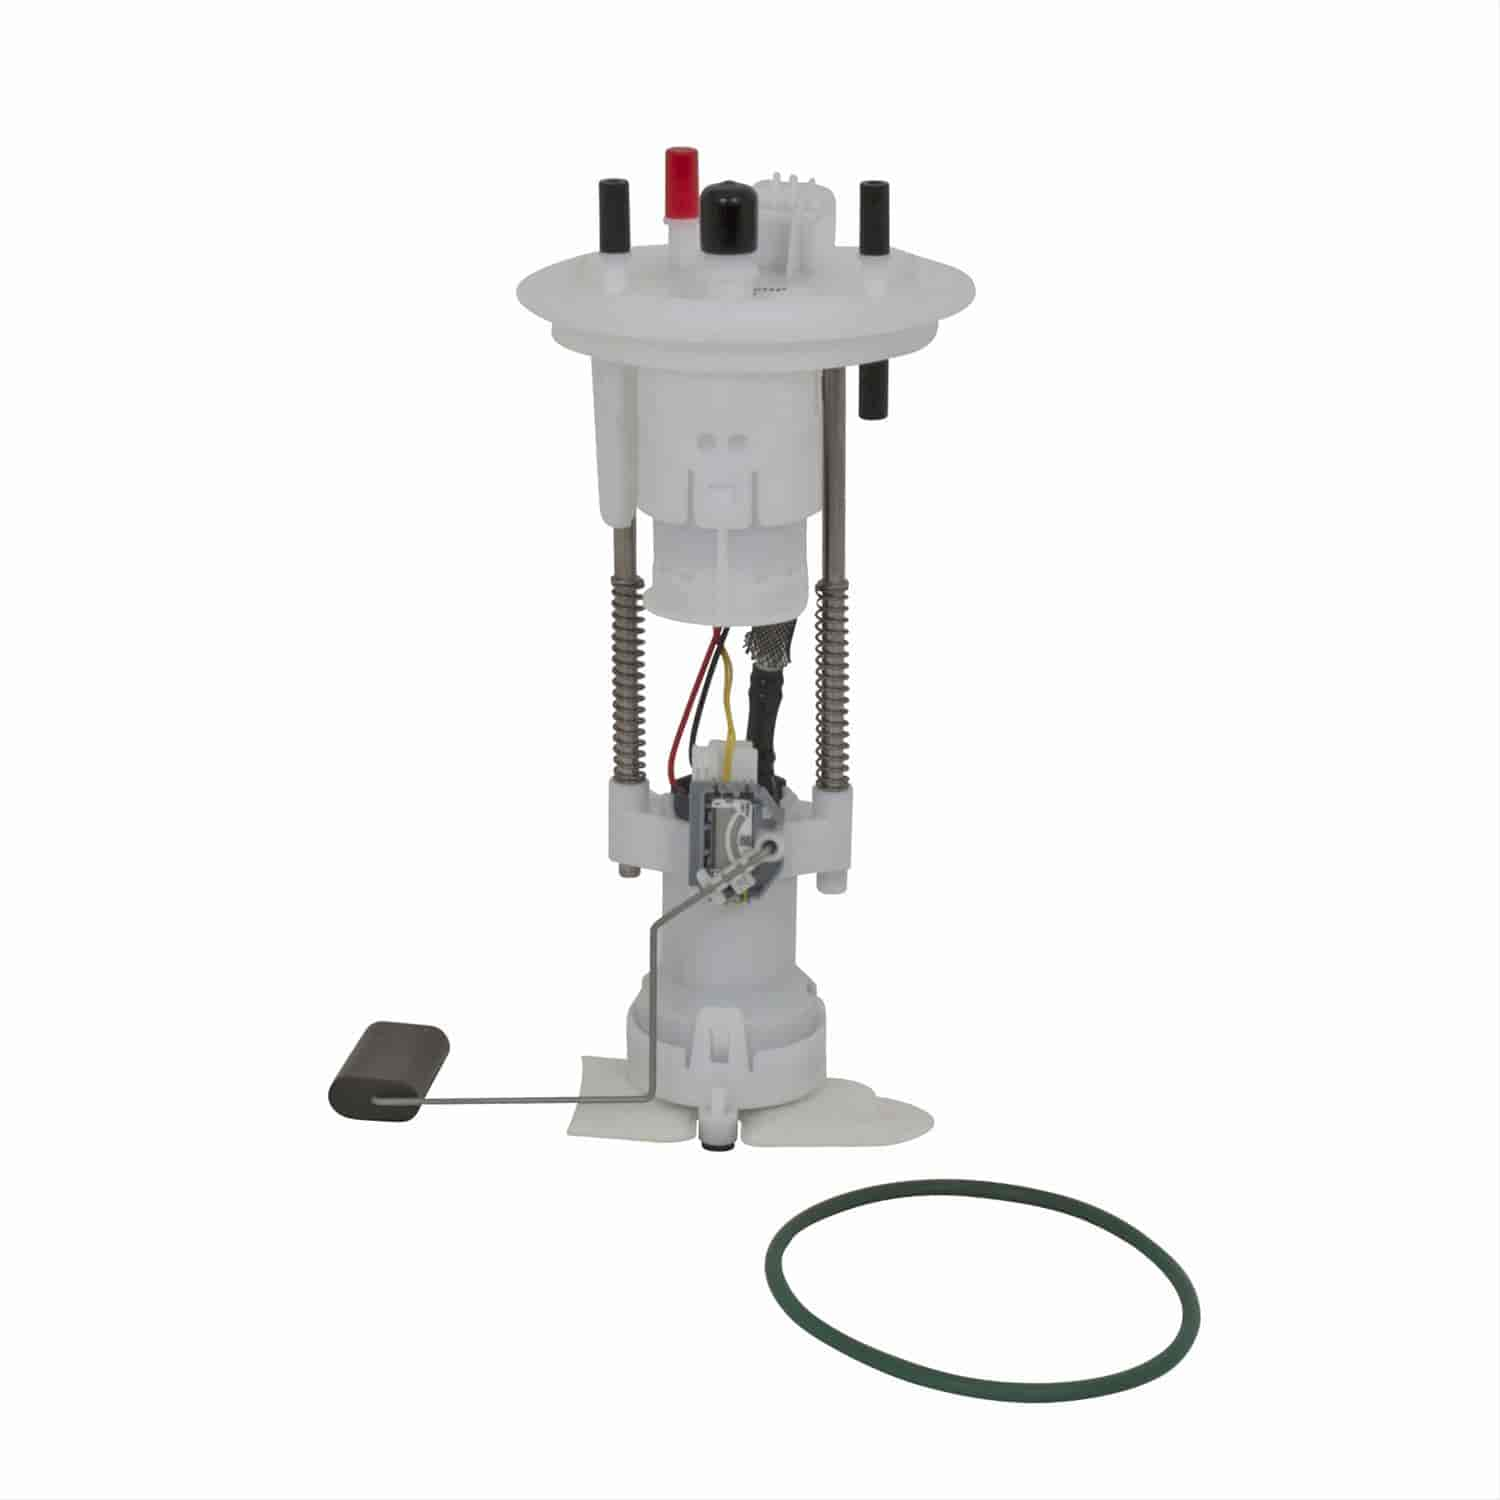 BBK Performance Parts 1864 - BBK Performance Parts Electric Fuel Pump Kits